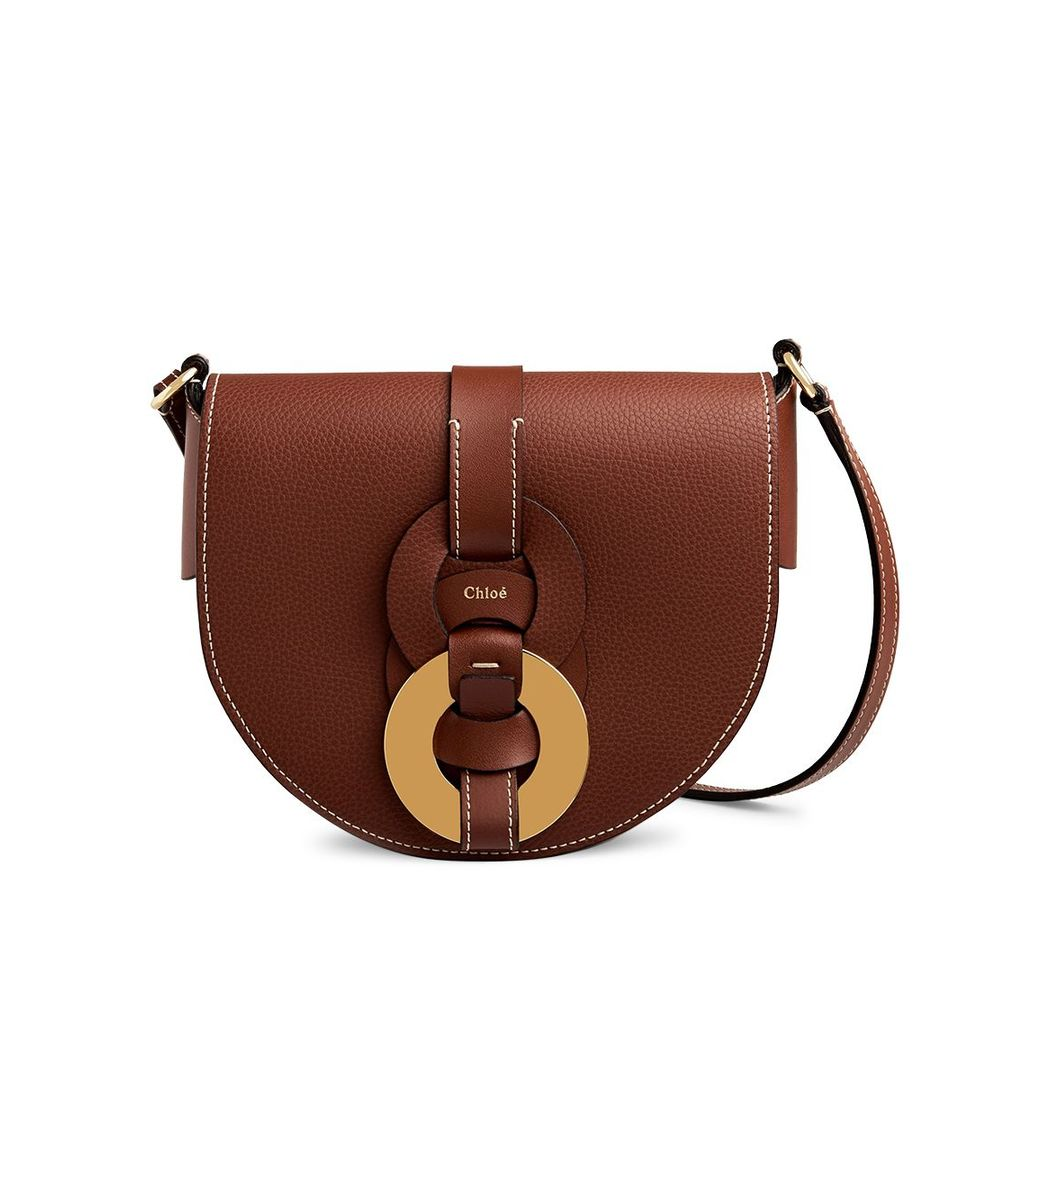 Chloé Small Darryl Saddle Bag, Sepia Brown